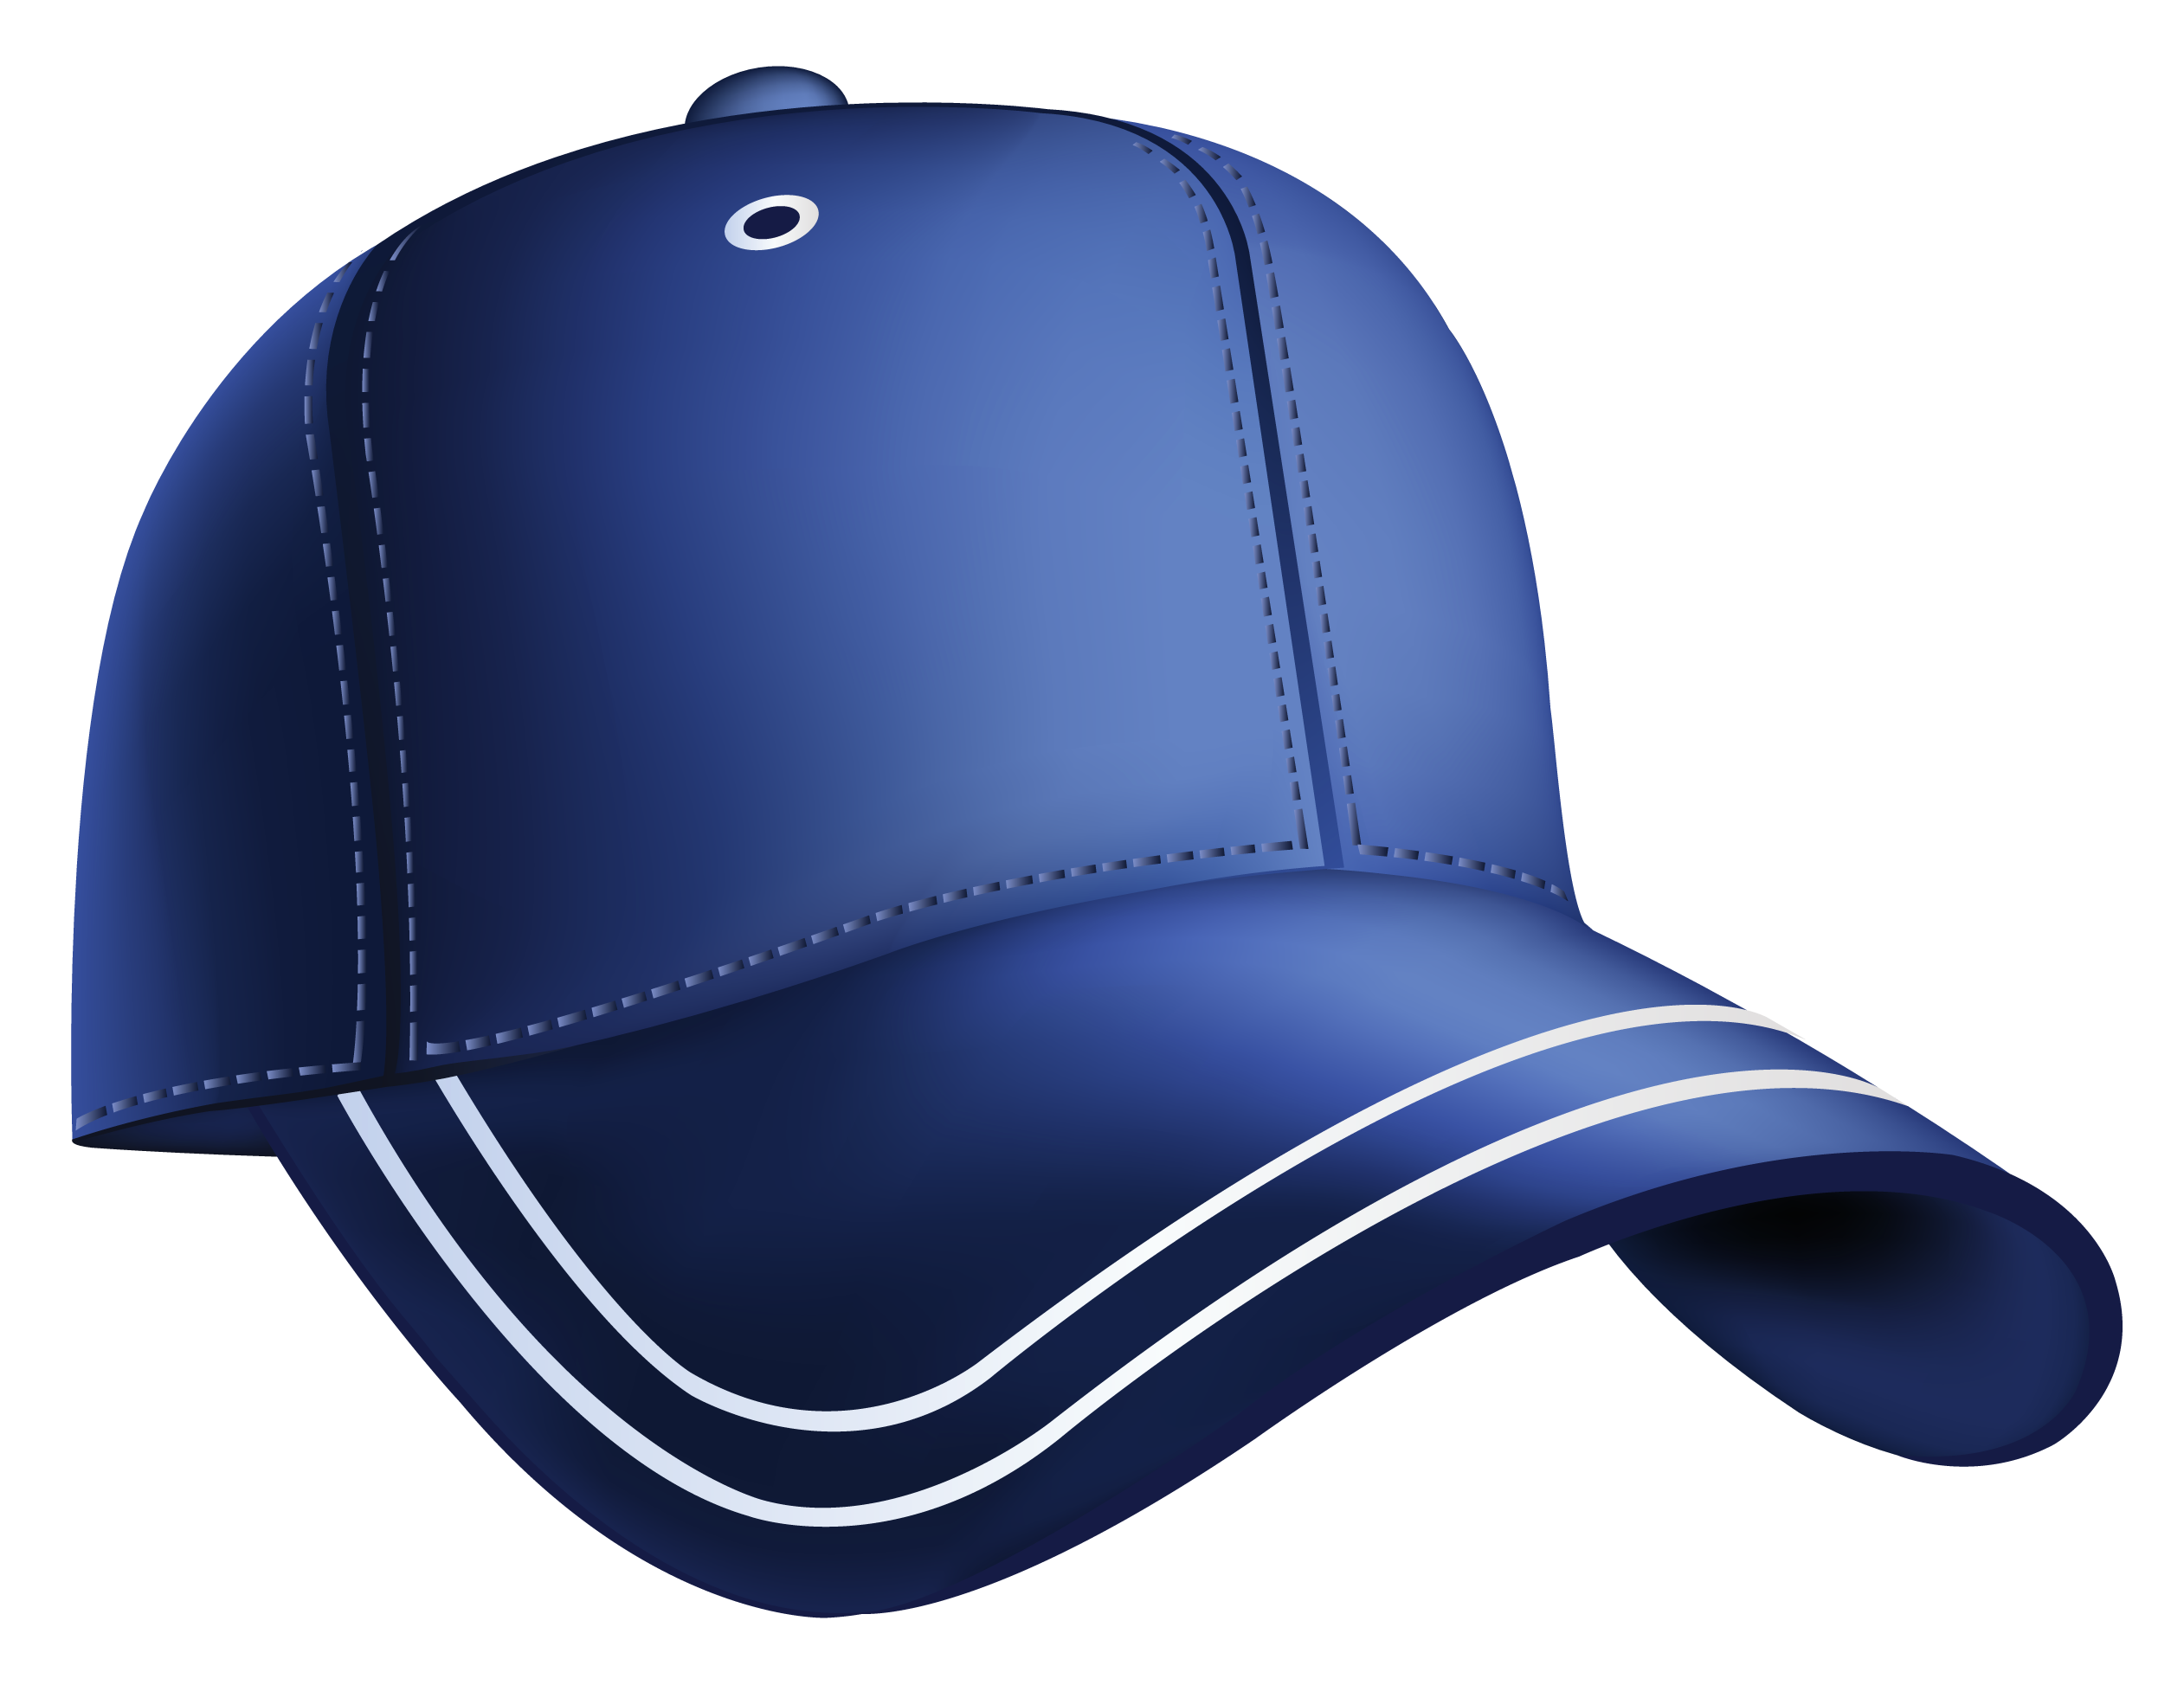 Hat Clipart - clipartall - Hat Clipart